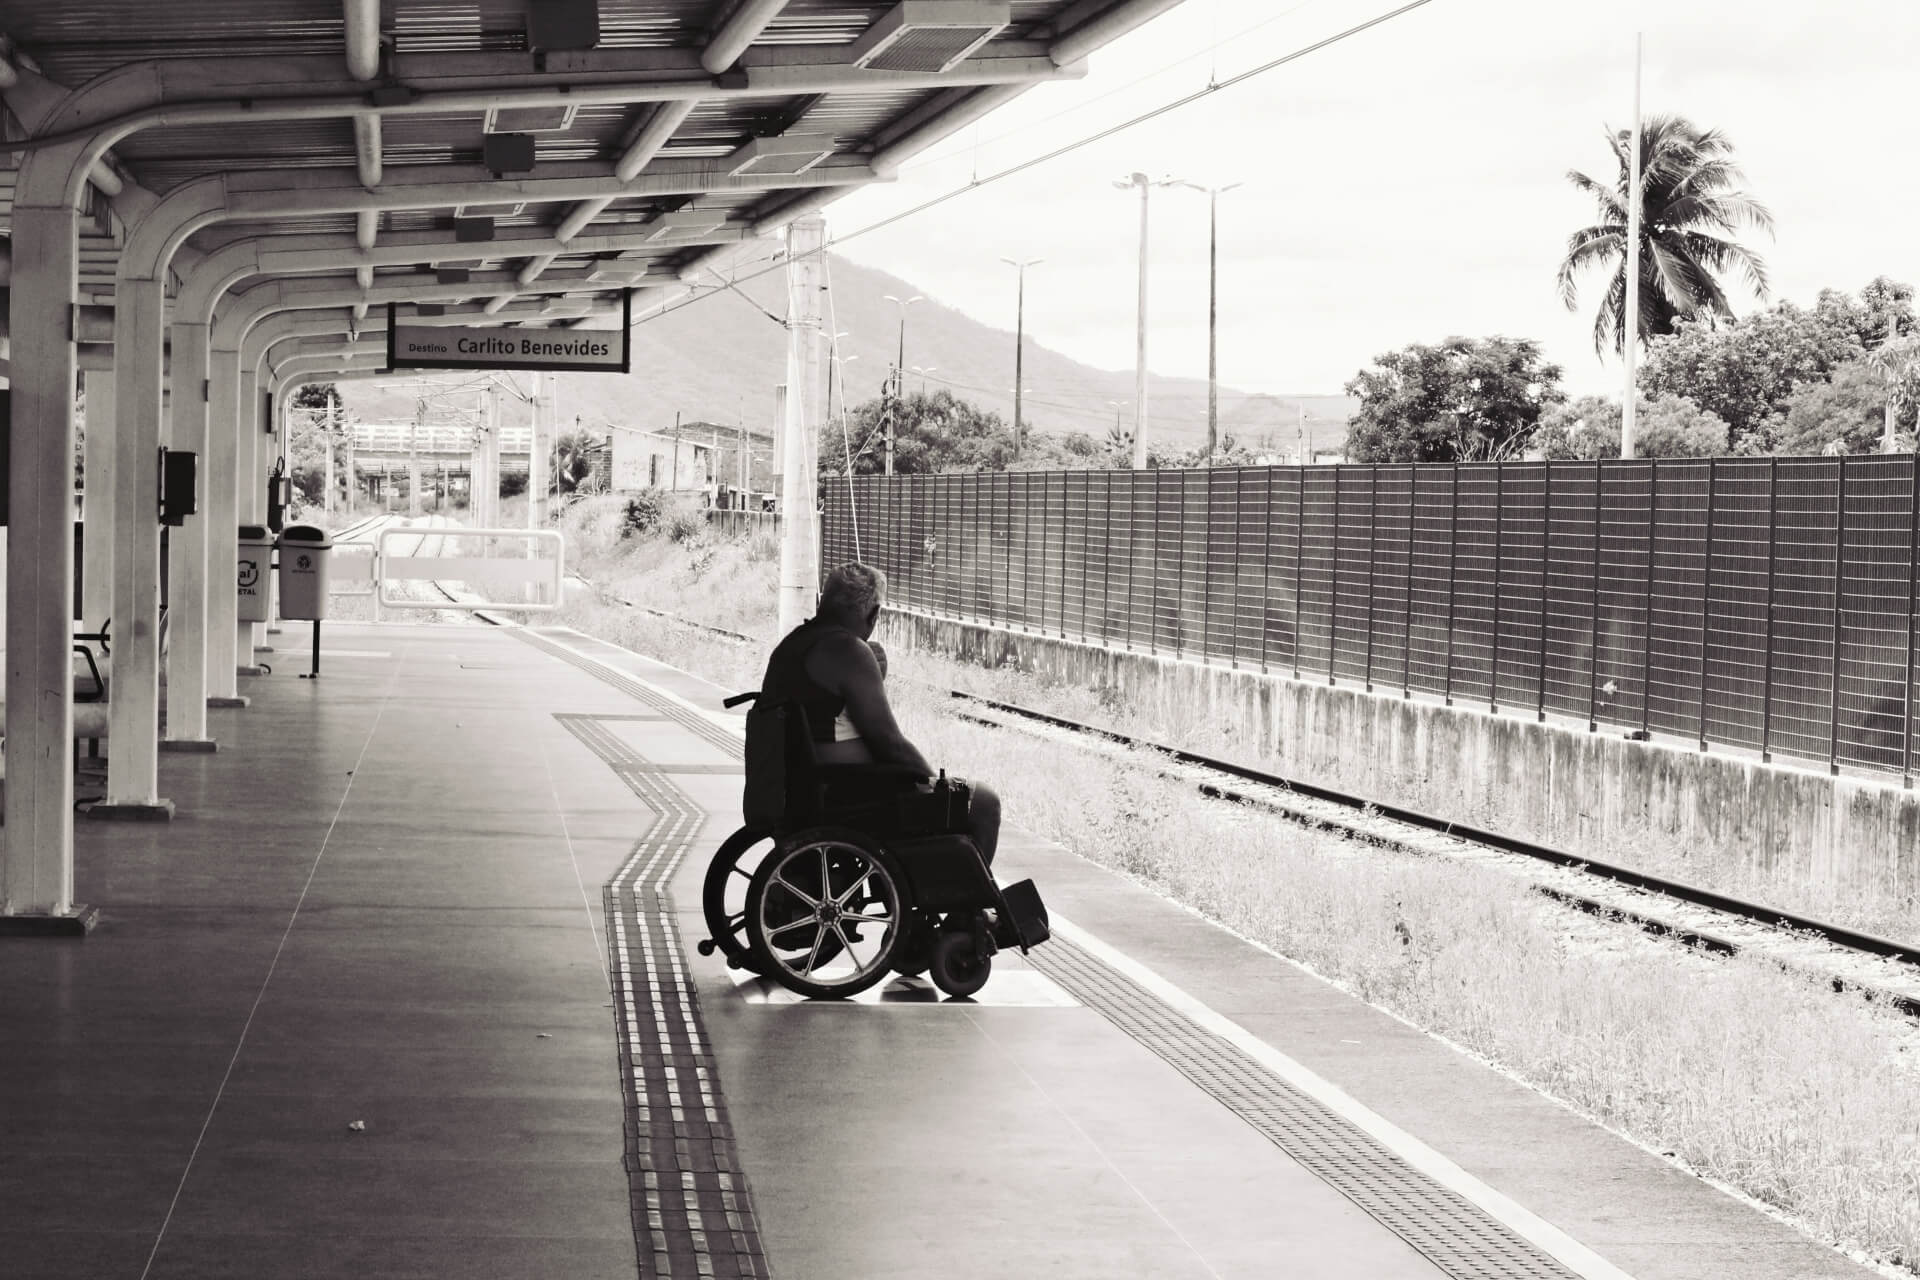 Photo by igor Rodrigues. Man in Wheelchair